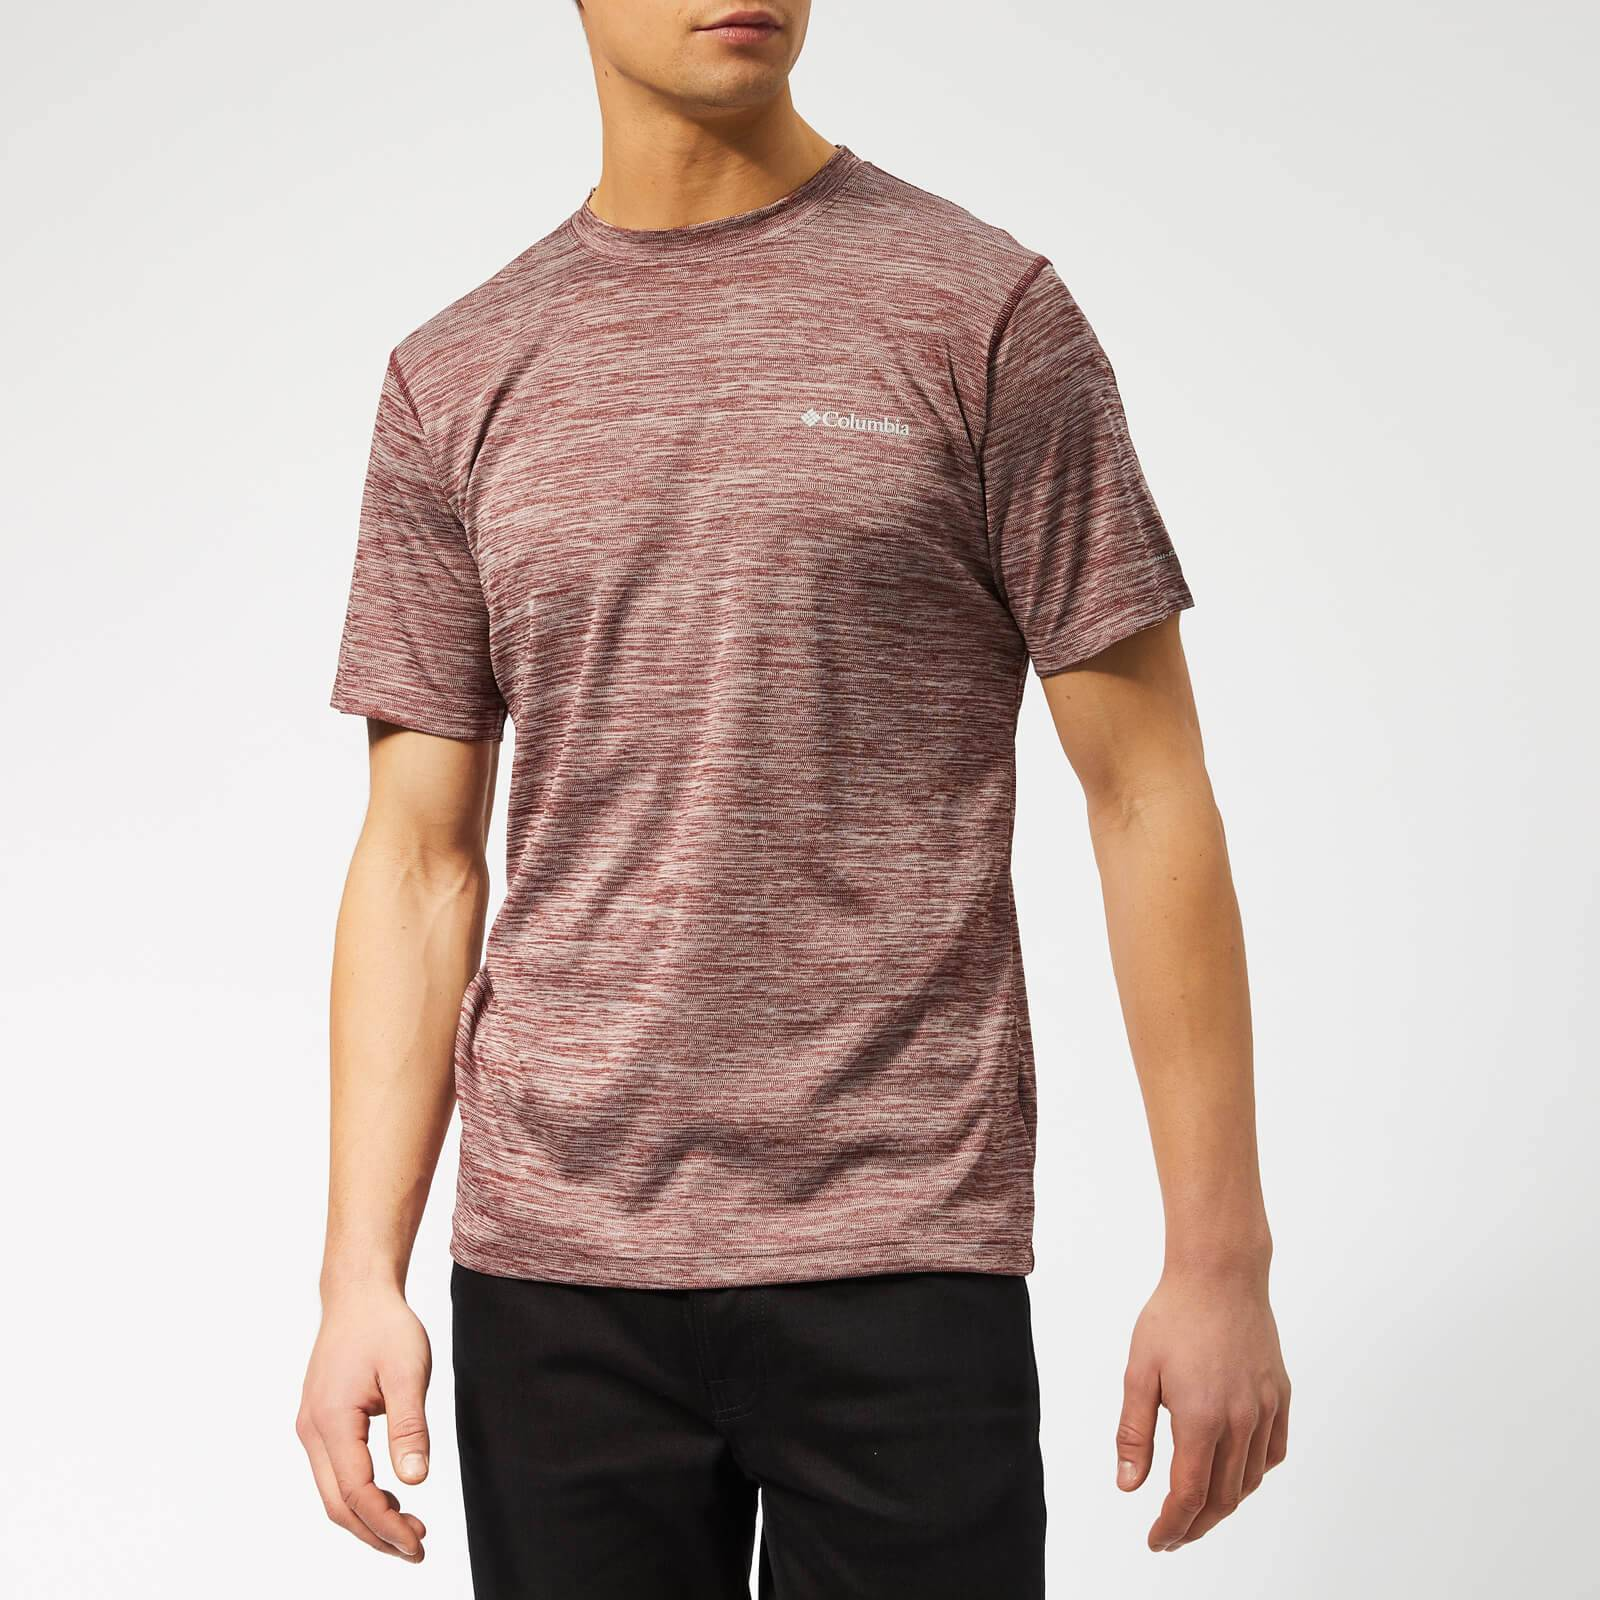 Columbia Men's Zero Rules Short Sleeve T-Shirt - Tapestry Heather - XL - Red